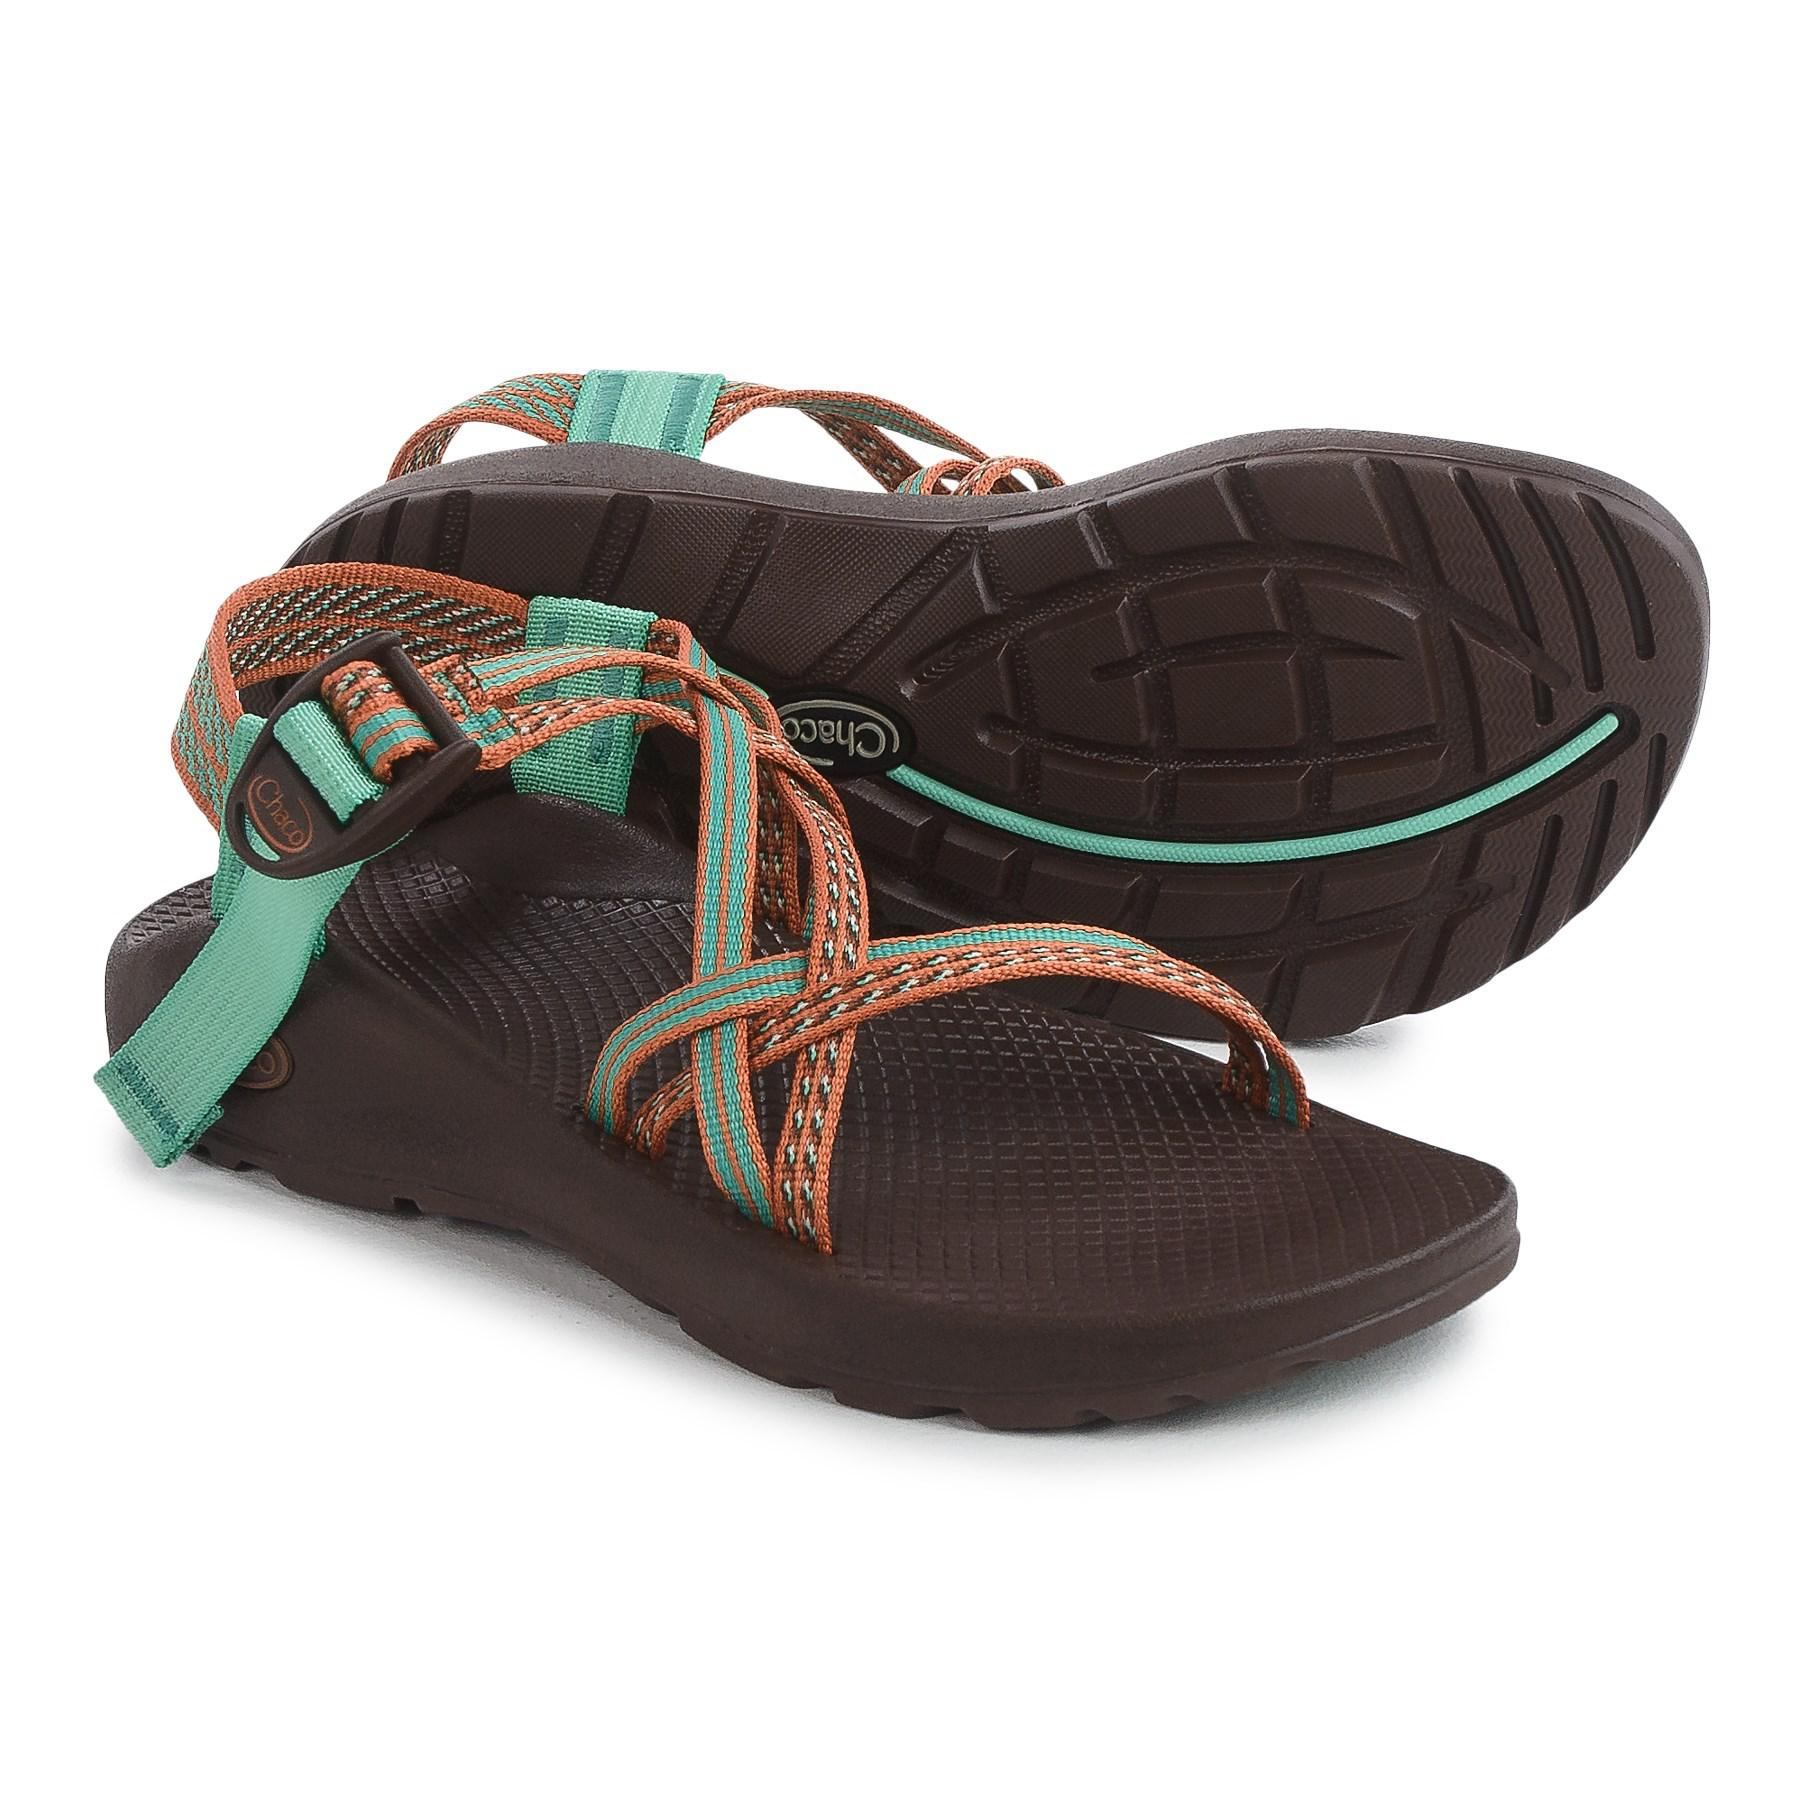 bcf74c707c Lyst - Chaco Zx/1 Classic Sport Sandals (for Women)